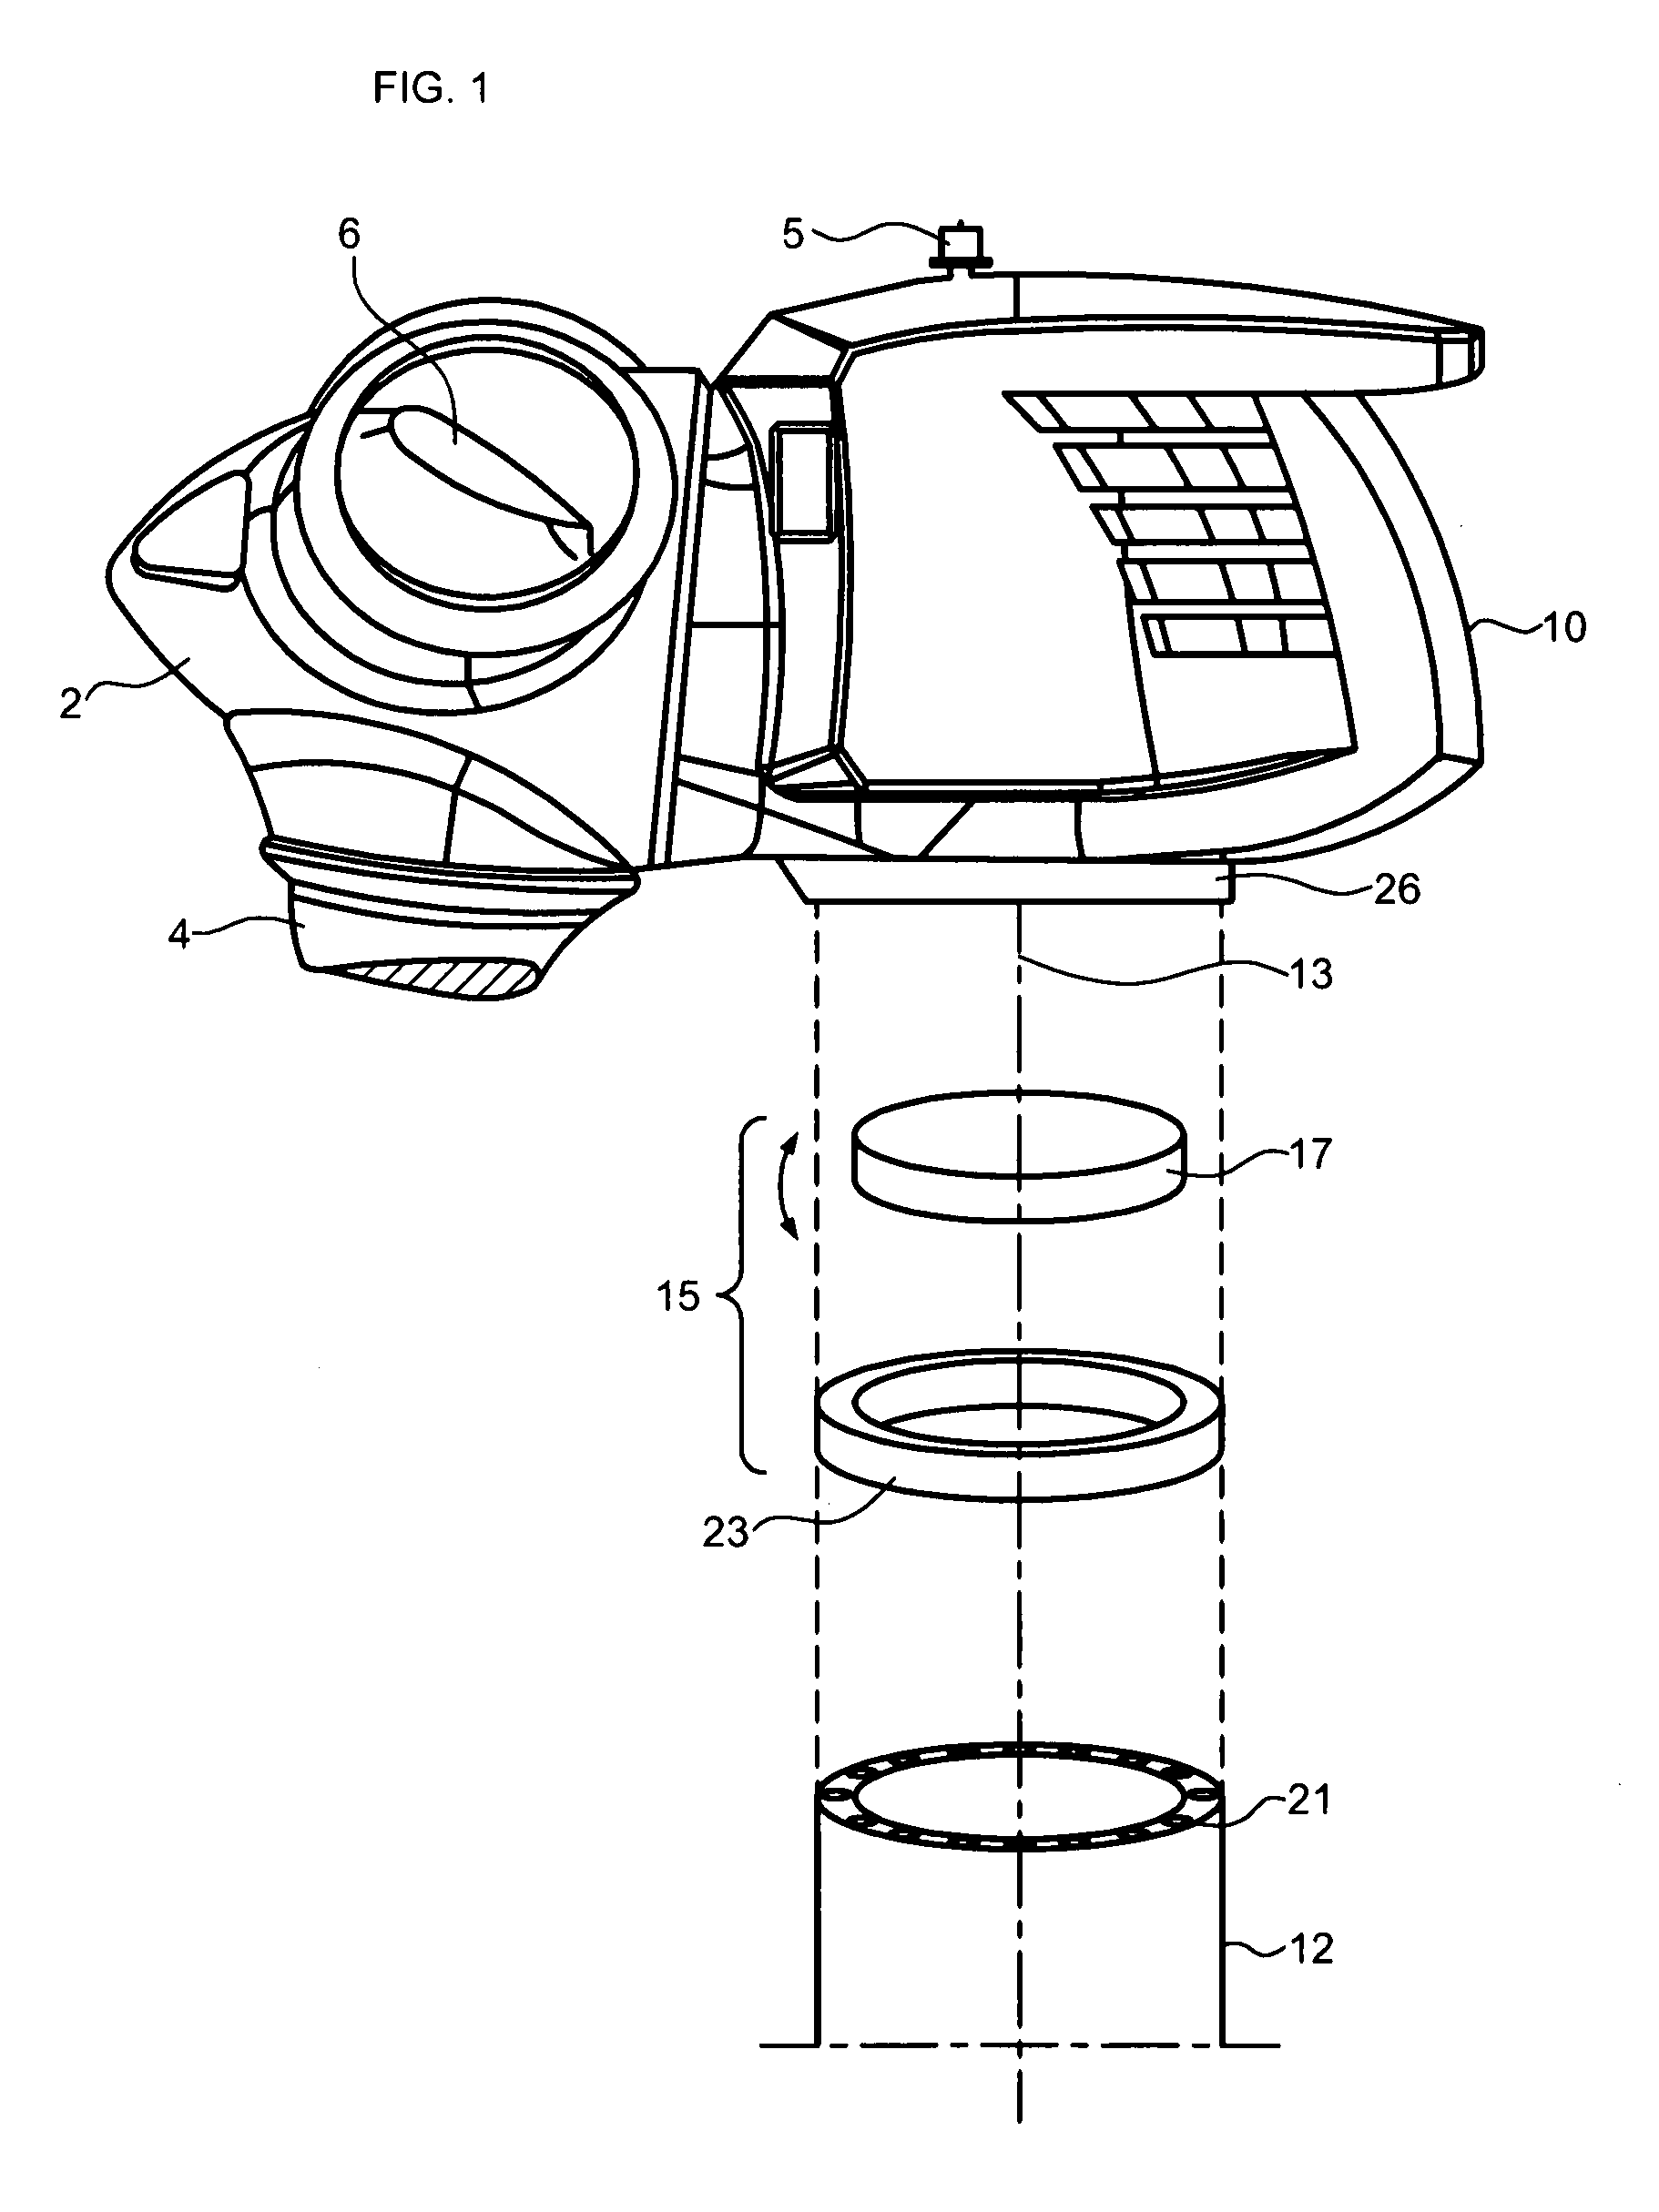 WO2011004248A1 MOTOR YAW DRIVE SYSTEM FOR A WIND TURBINE